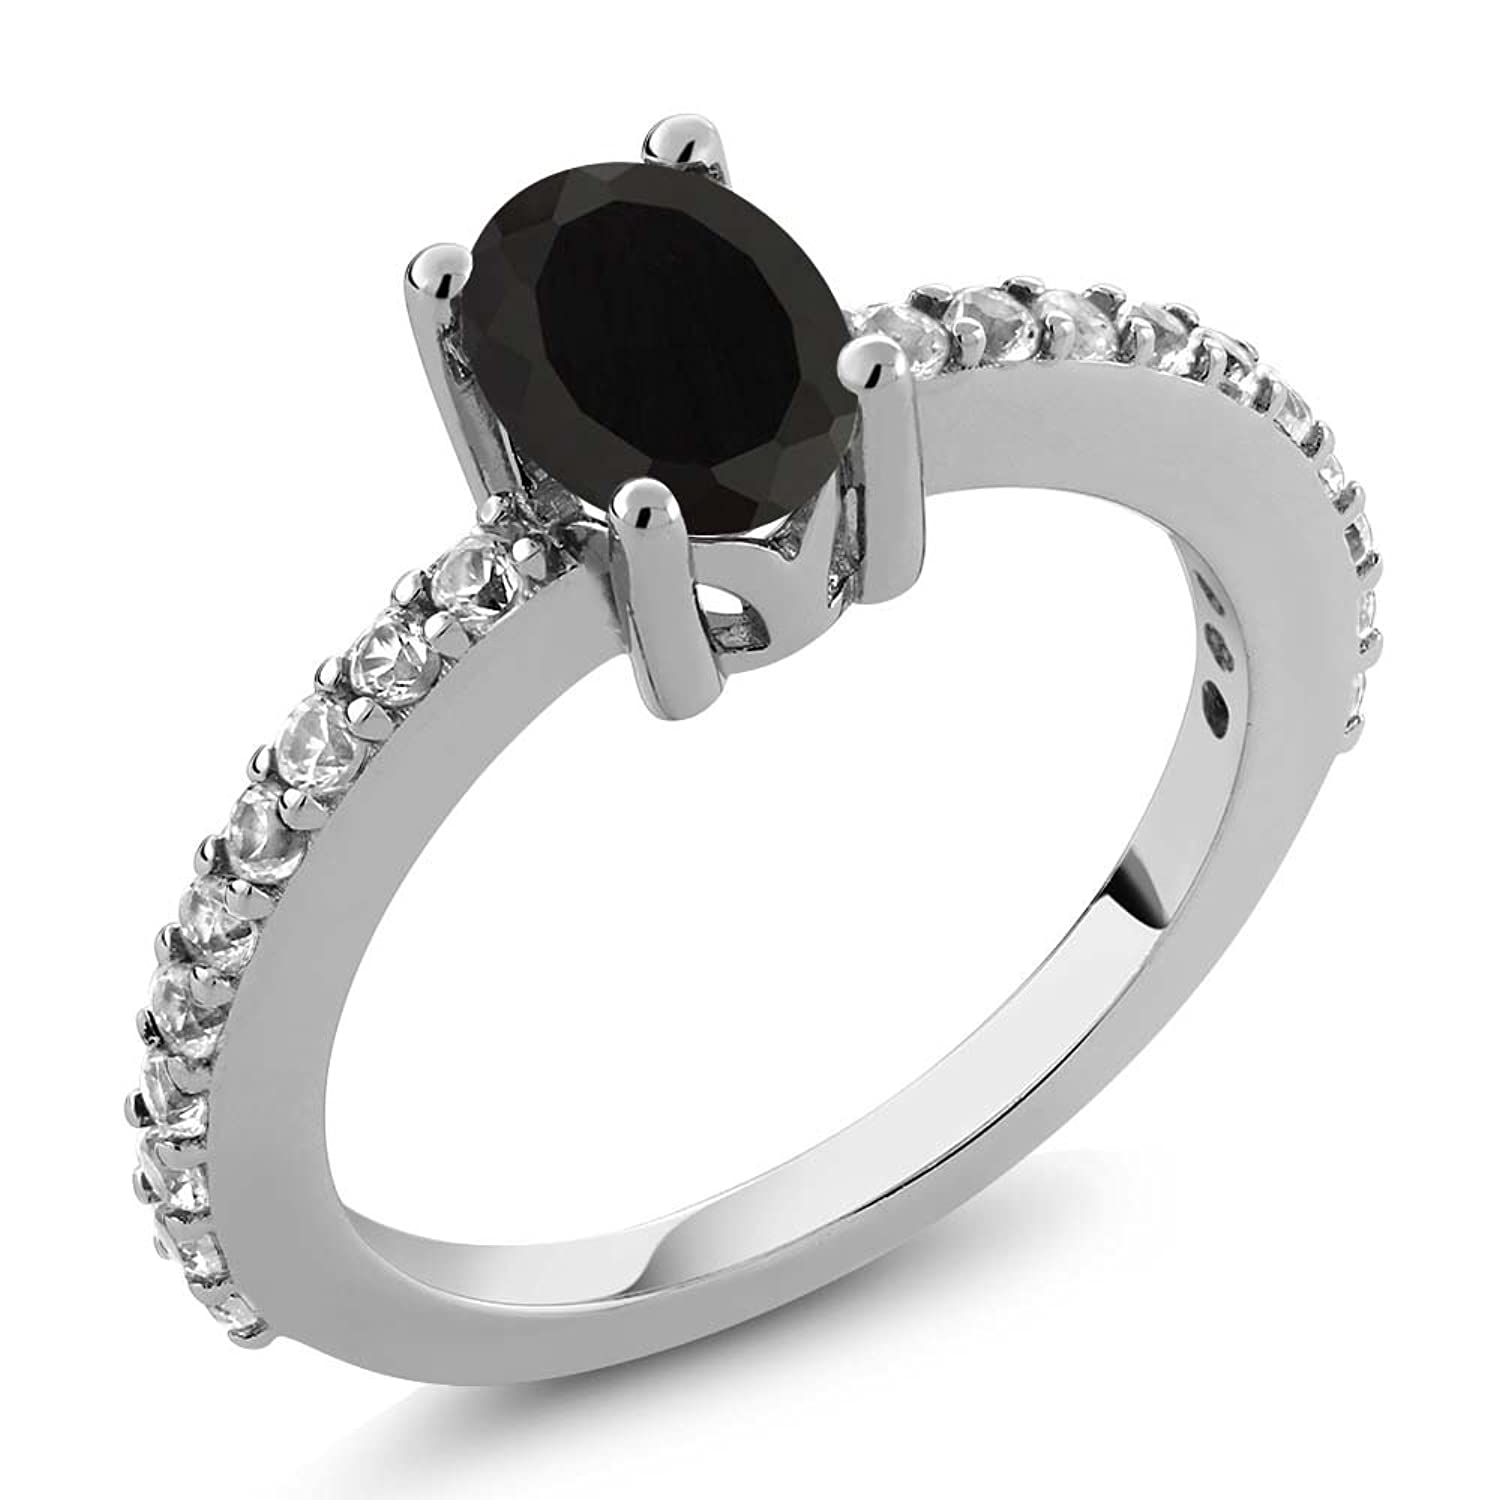 0.98 Ct 7x5mm Oval Black Onyx White Created Sapphire 925 Sterling Silver Ring